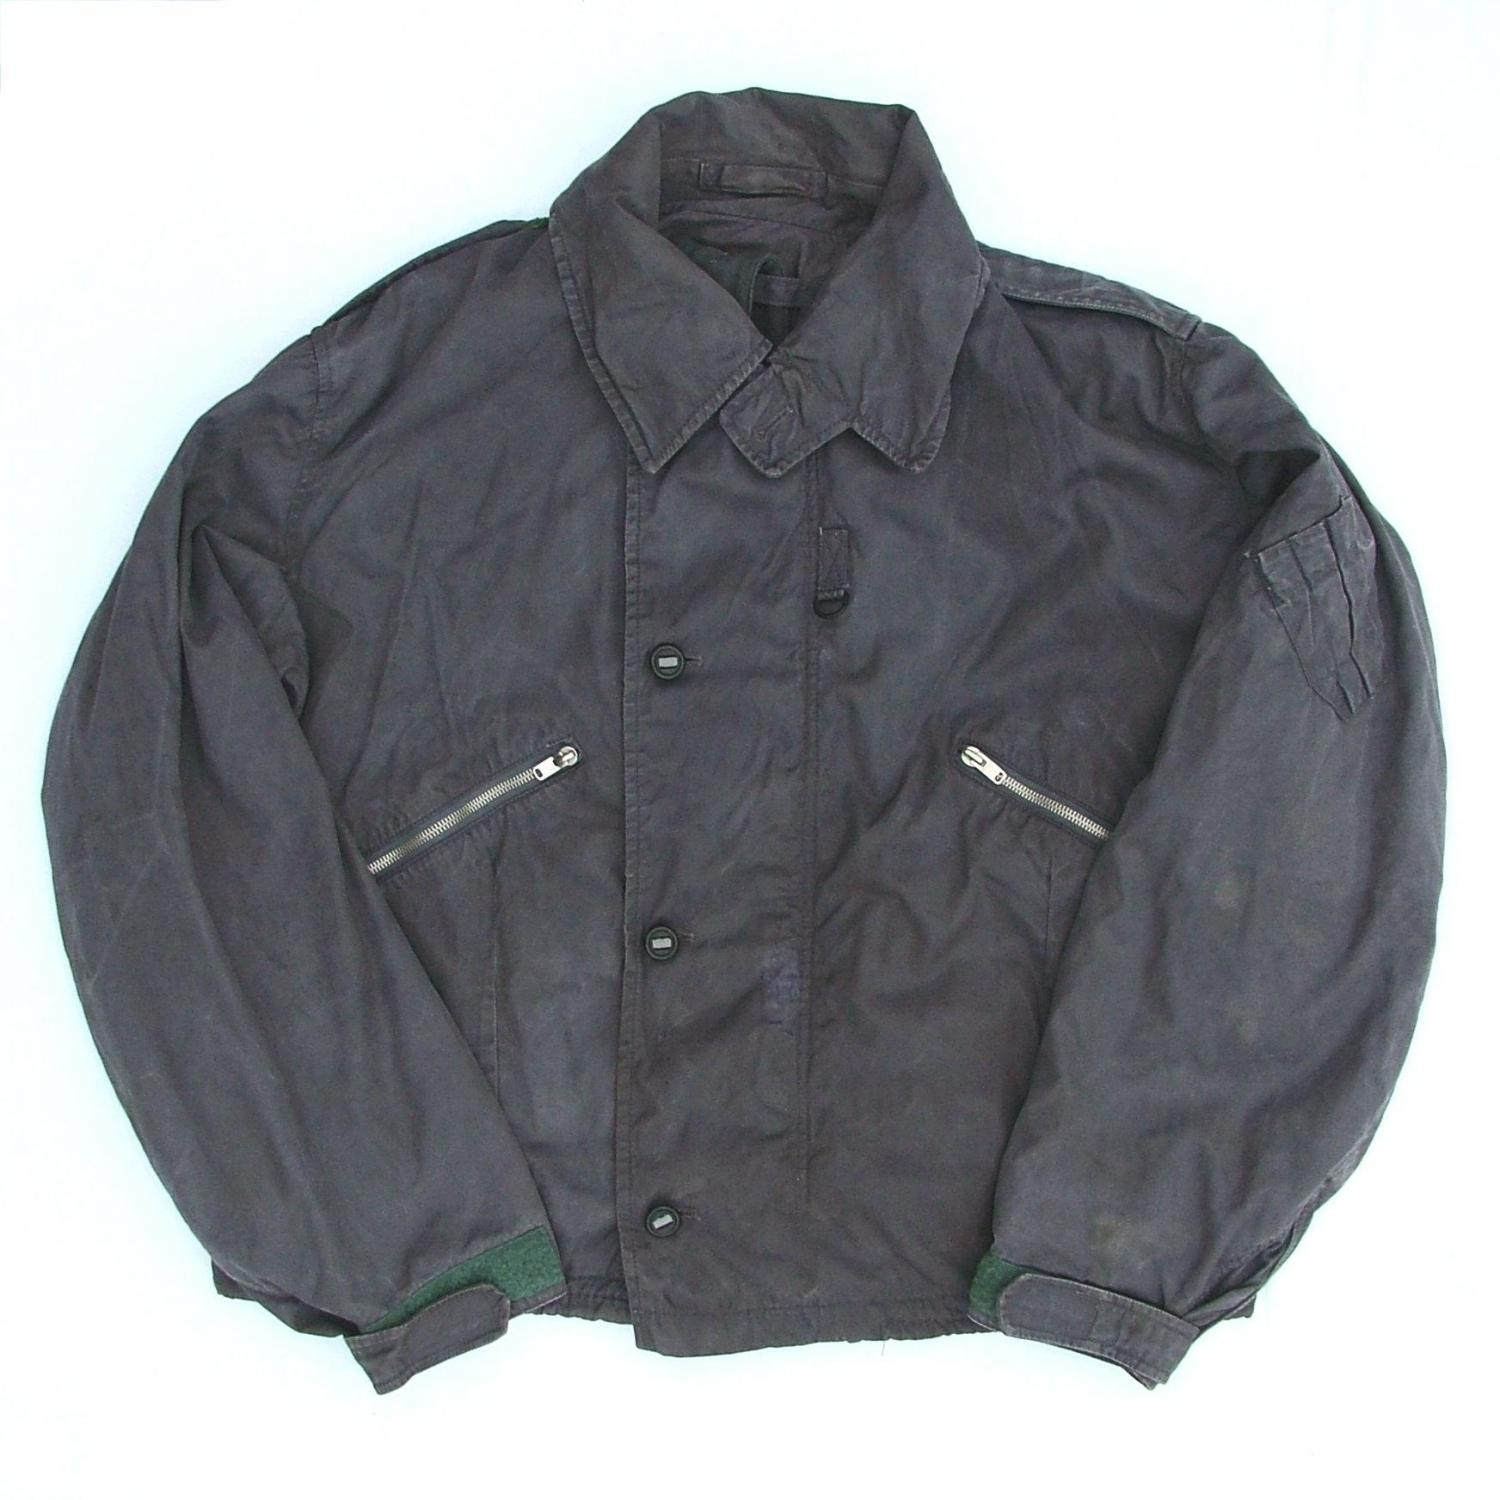 RAF MK.3 Flying Jacket - 1960s